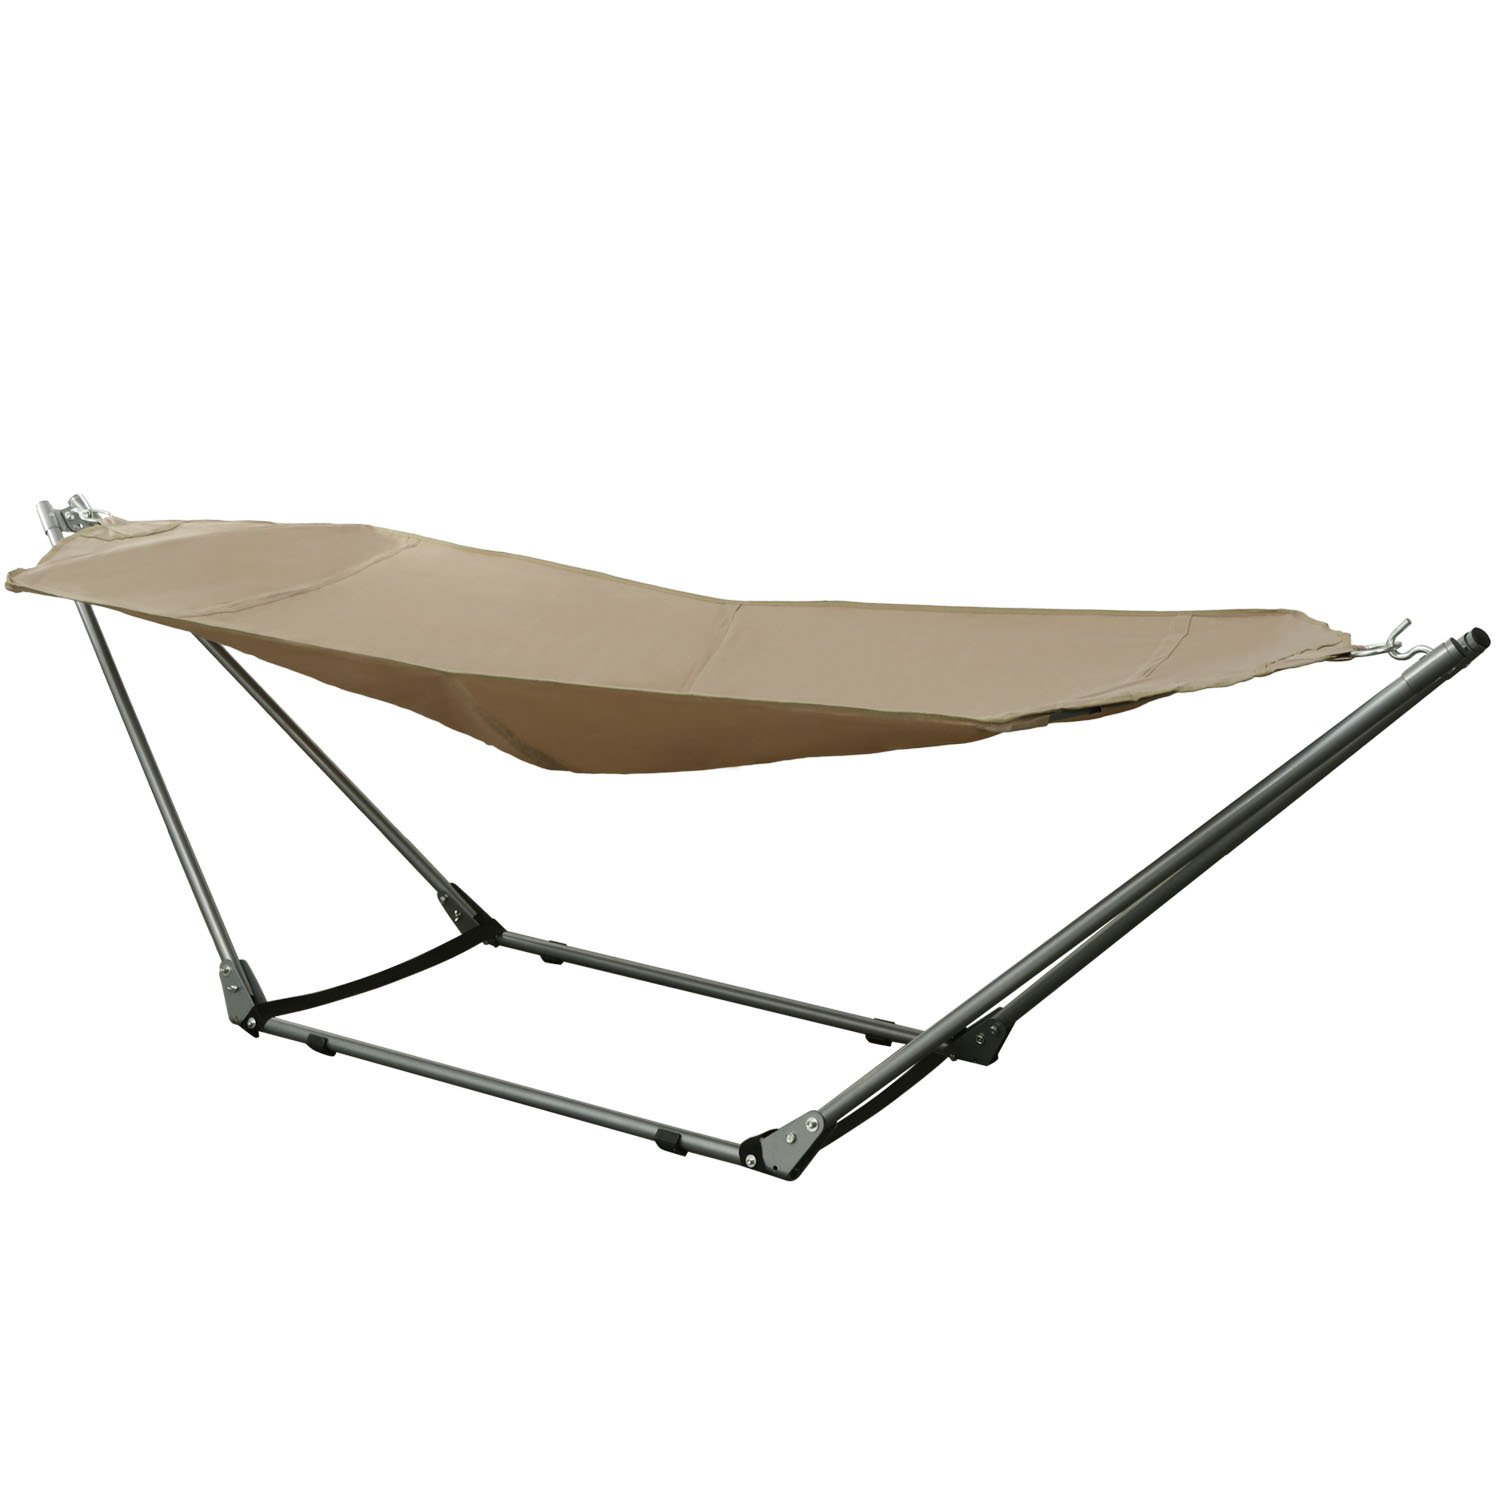 Ancheer Portable Canvas Hammock with Space-saving Steel Stand and Shoulder  Harness Carrying Bag - Amazon.com : Stalwart Portable Hammock With Frame Stand And